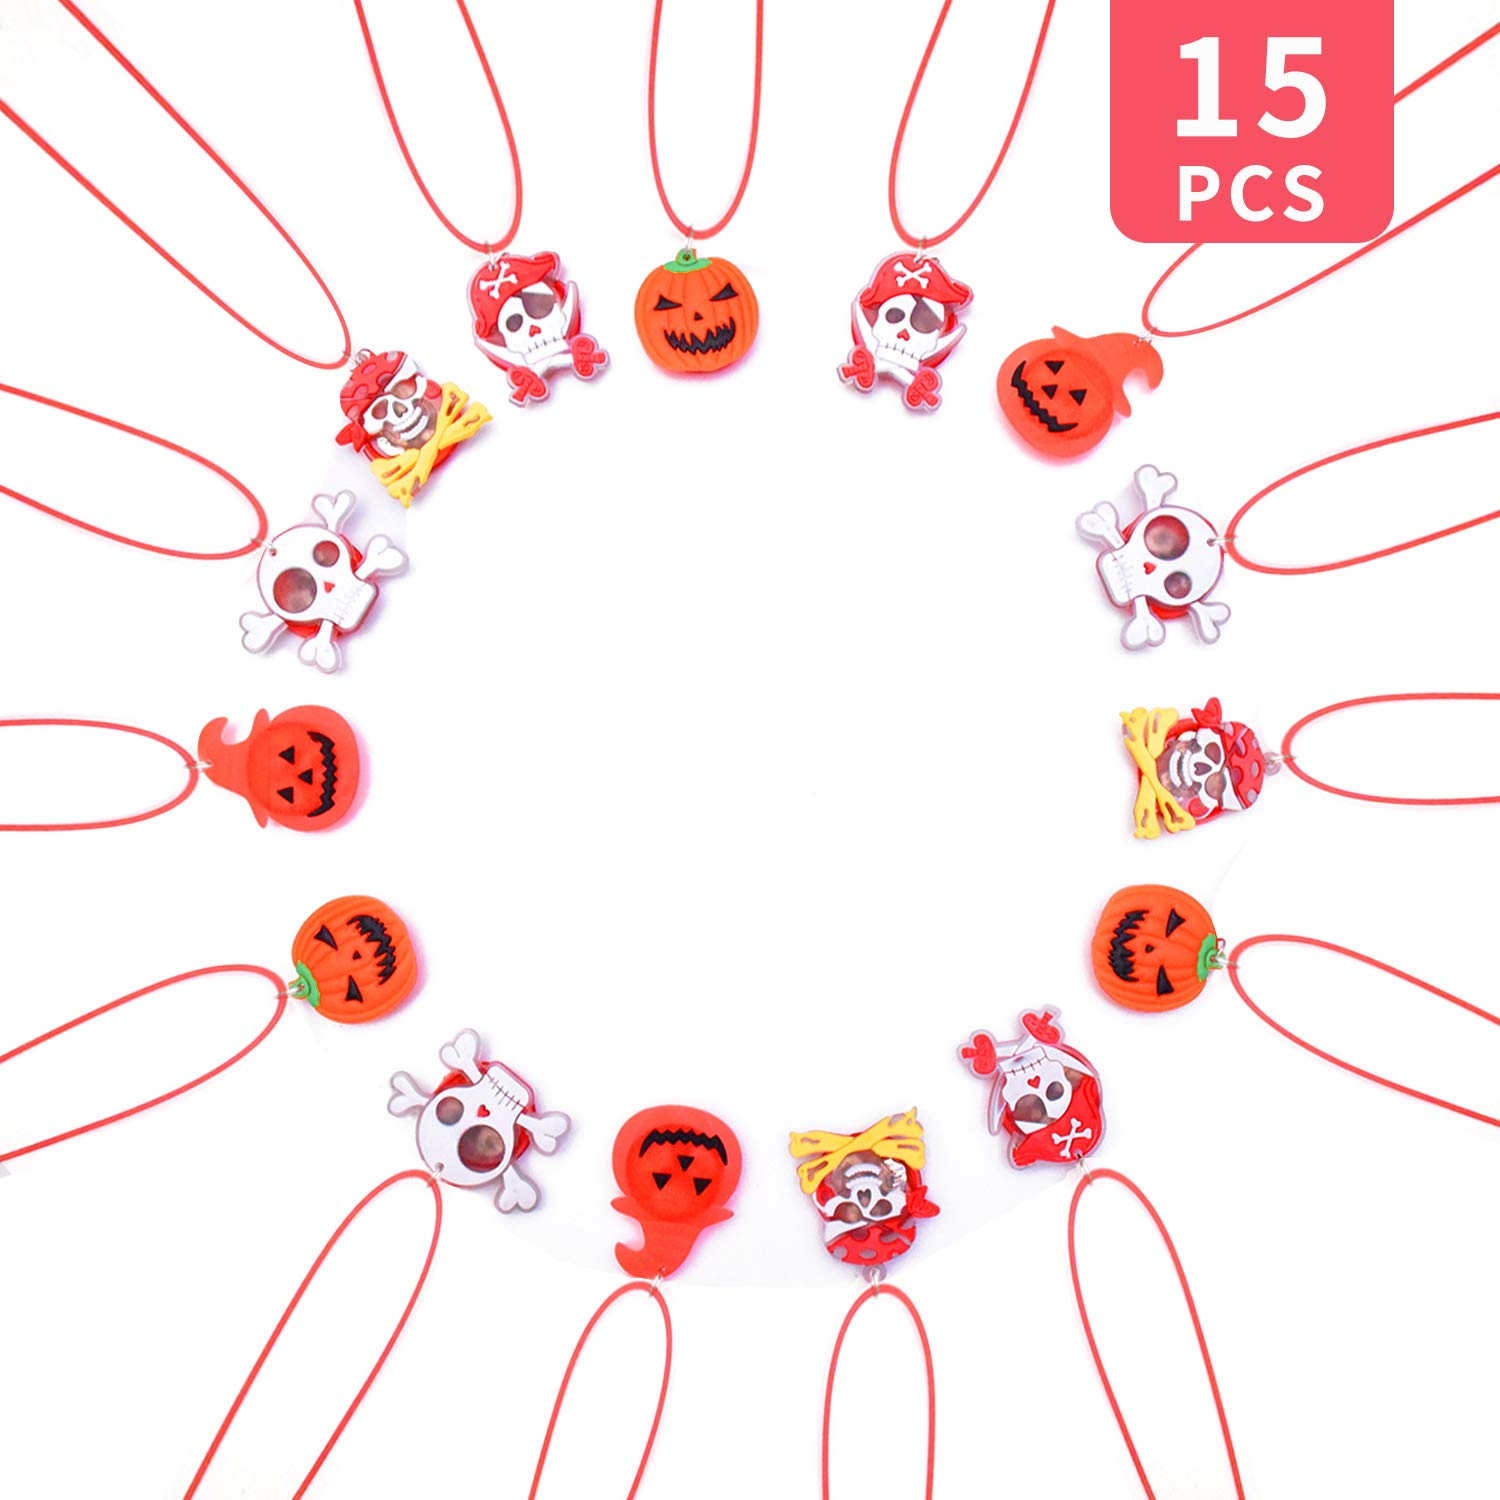 Halloween LED Necklaces Party Favors Set for Kids and Adult with Gift Package Halloween Light up toys Treat Bag Fillers 15pcs by Senhui